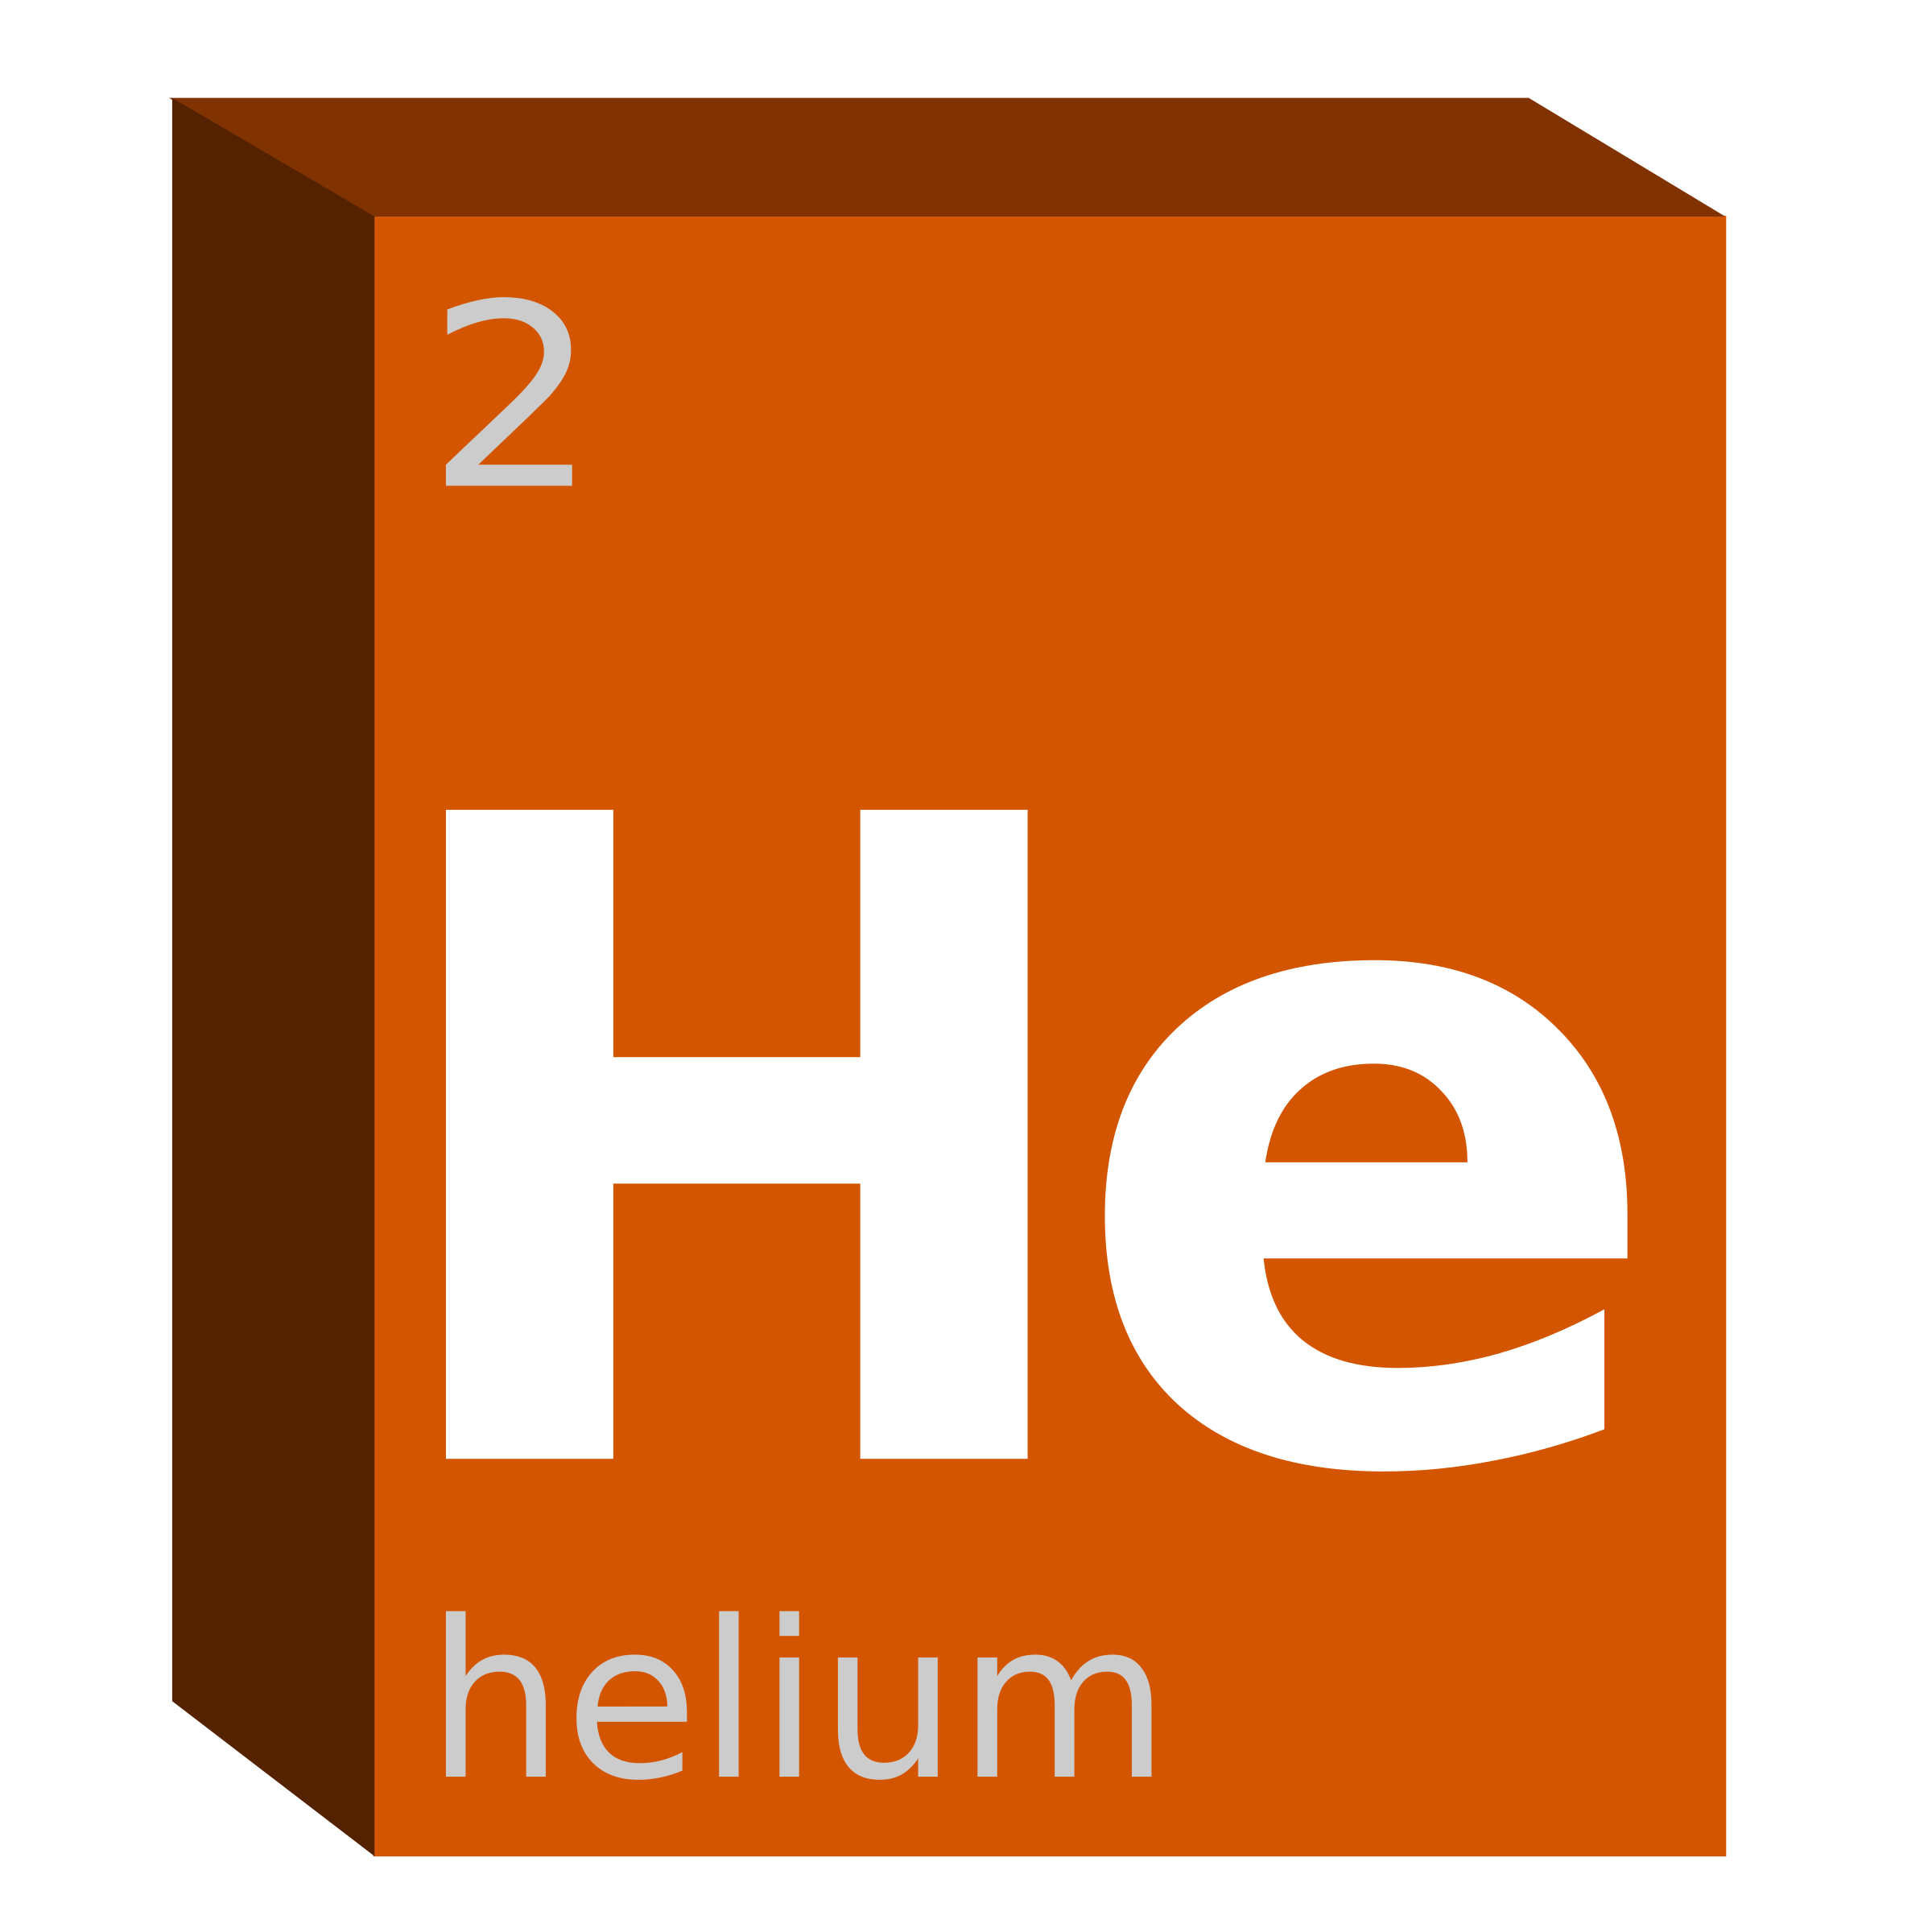 Element clipart ornamental Block Chemistry (He) Helium Helium